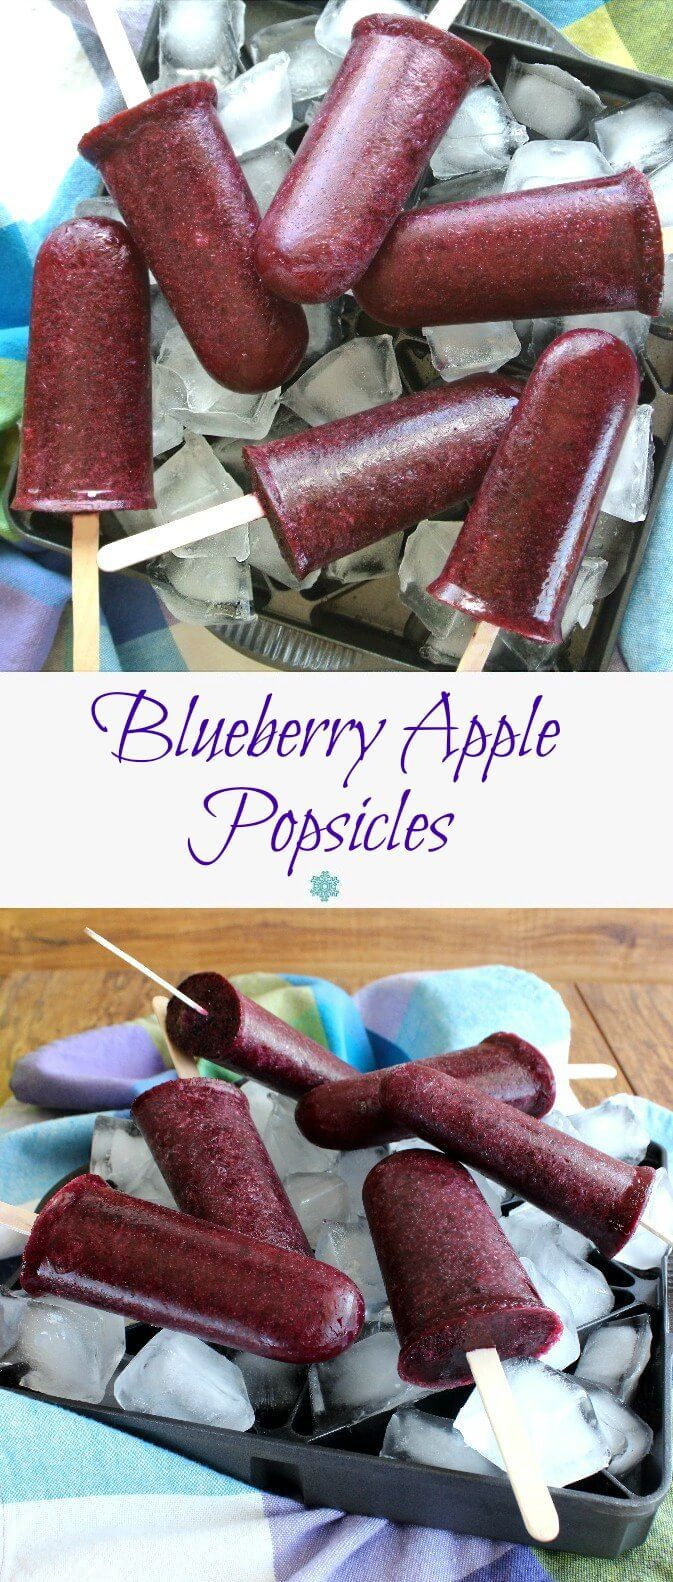 Blueberry Apple Popsicles are fruity, clean, fresh and cold. Only 2 ingredients to take you on your way to a healthy and easy treat. ~ http://veganinthefreezer.com